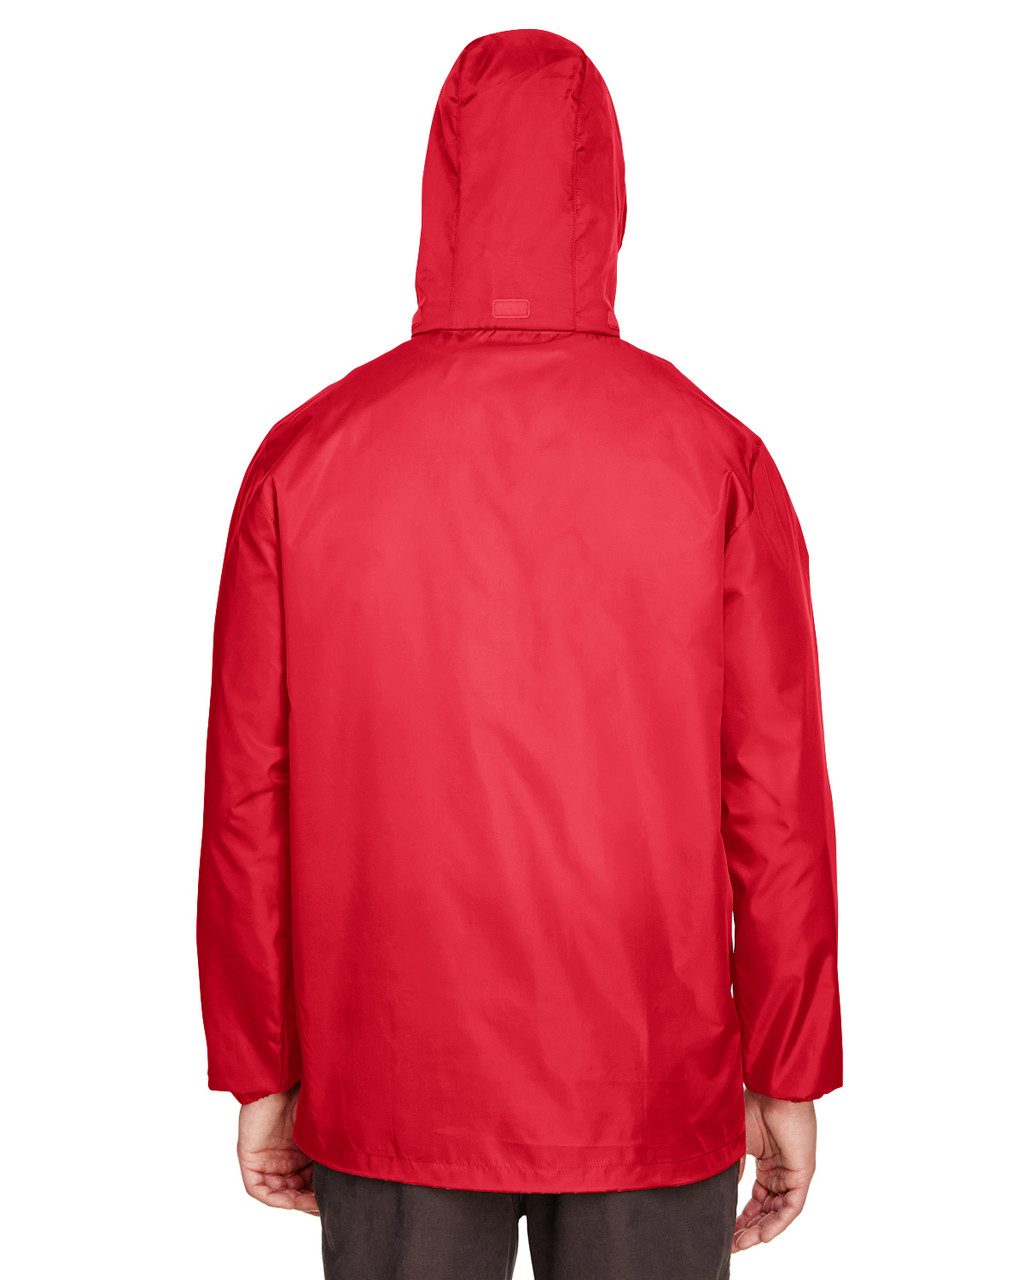 Sport Red, Back - TT73 Team 365 Adult Zone Protect Lightweight Jacket   BlankClothing.ca